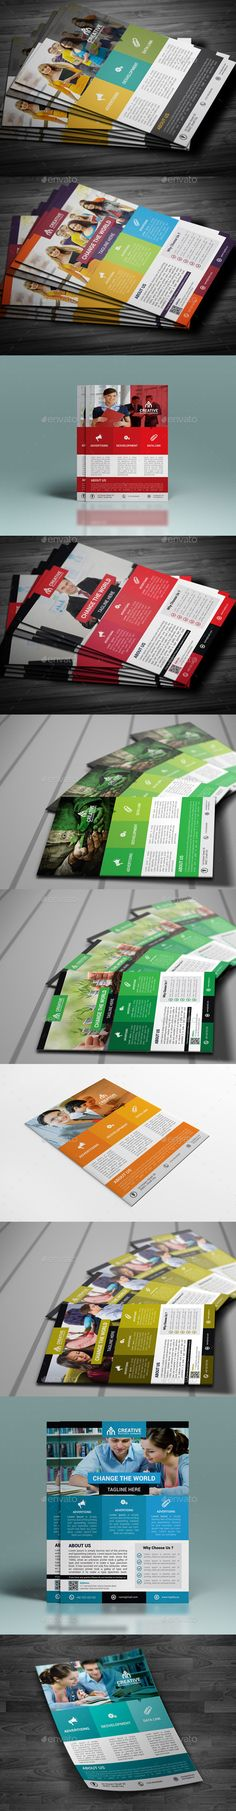 Corporate Flyer Bundle - Corporate Flyer Template Vector EPS, Vector AI. Download here: http://graphicriver.net/item/corporate-flyer-bundle/10758859?s_rank=1796&ref=yinkira